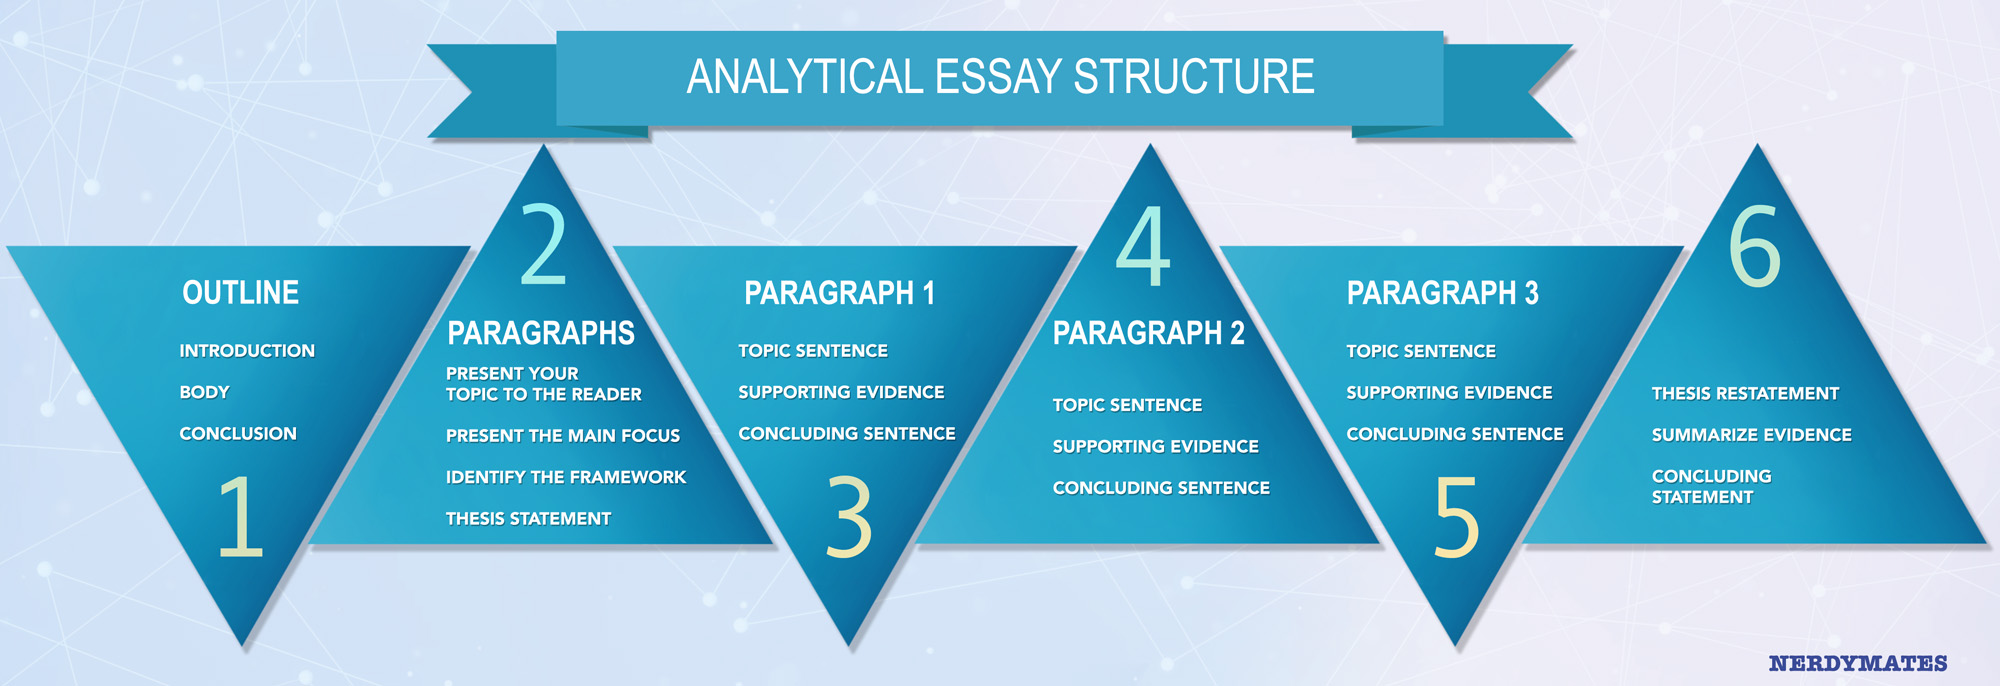 how to write an analytical essay a full guide nerdymates com create an analytical essay outline